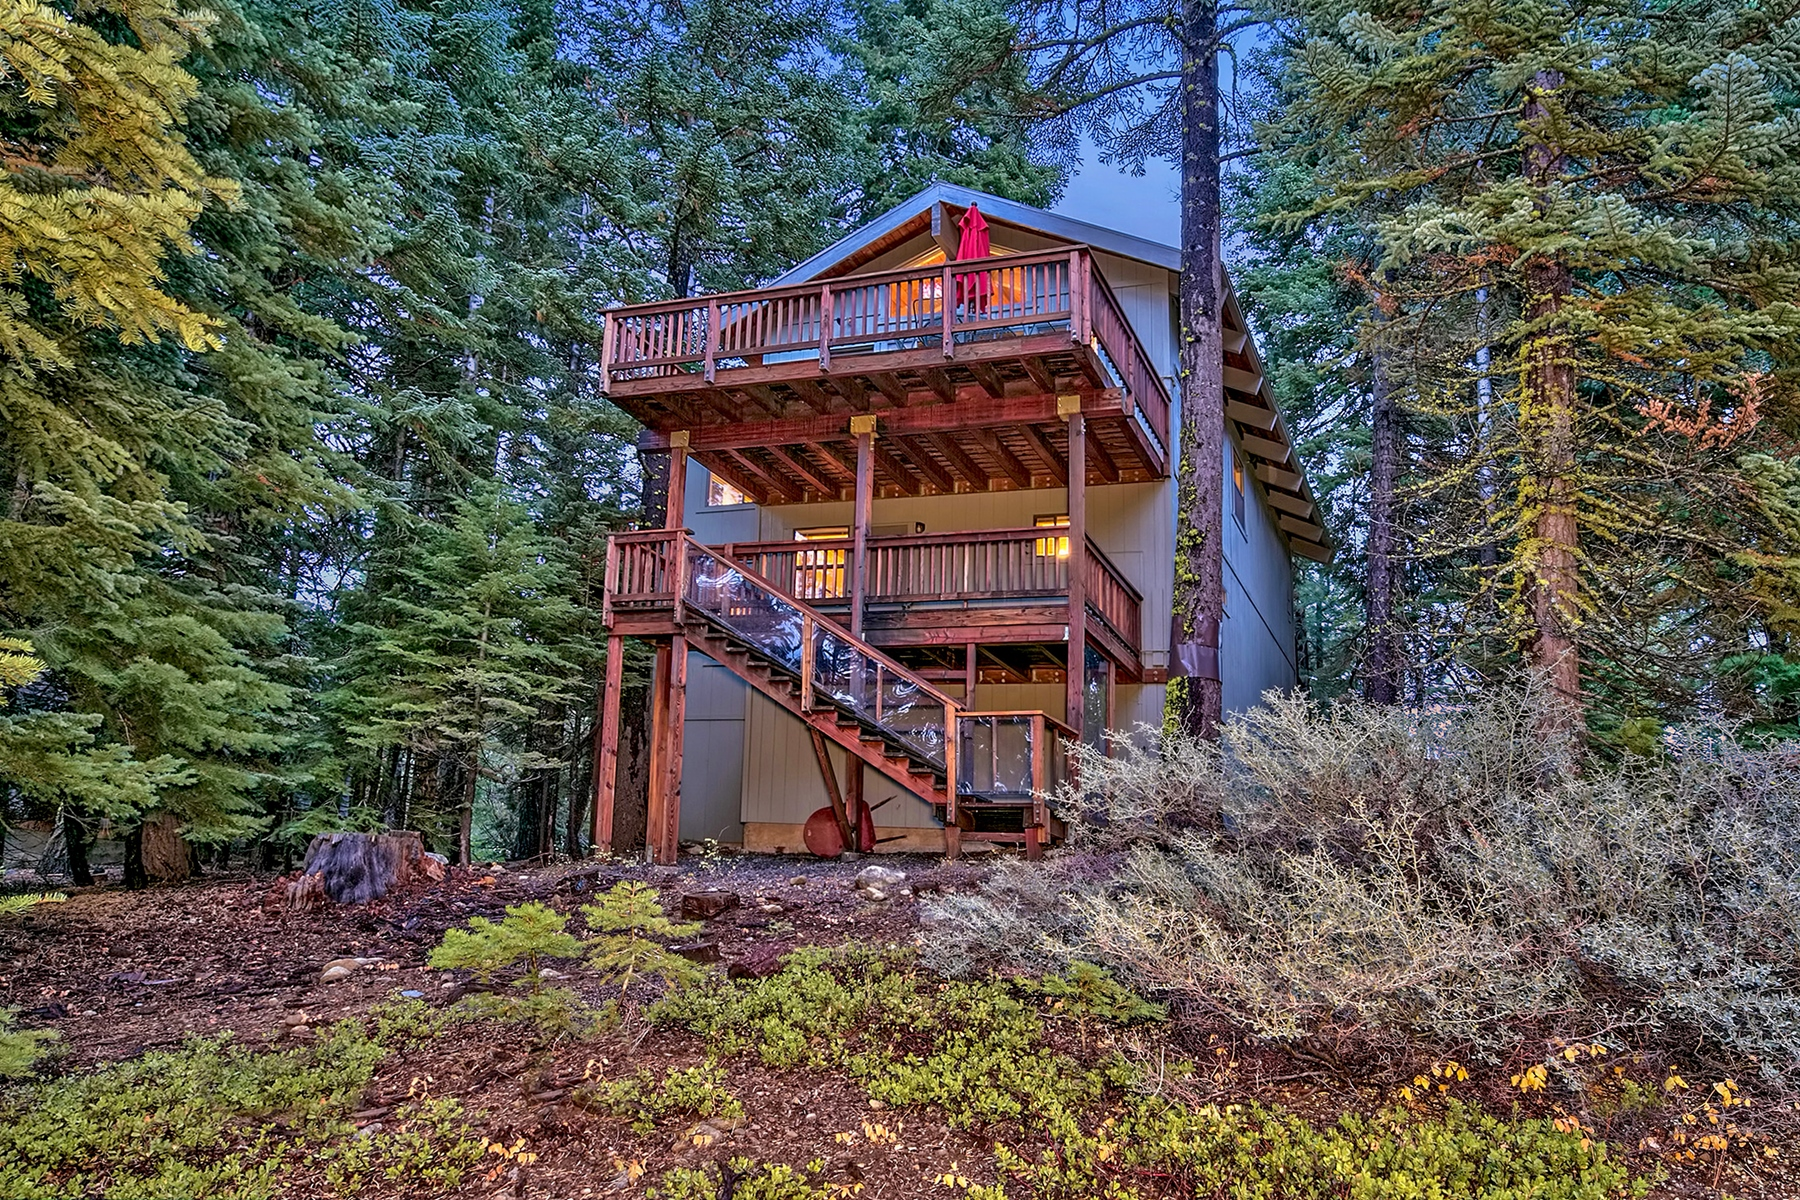 Additional photo for property listing at 740 Pine Ridge Road, Tahoma, CA 740 Pine Ridge Road Tahoma, California 96141 United States